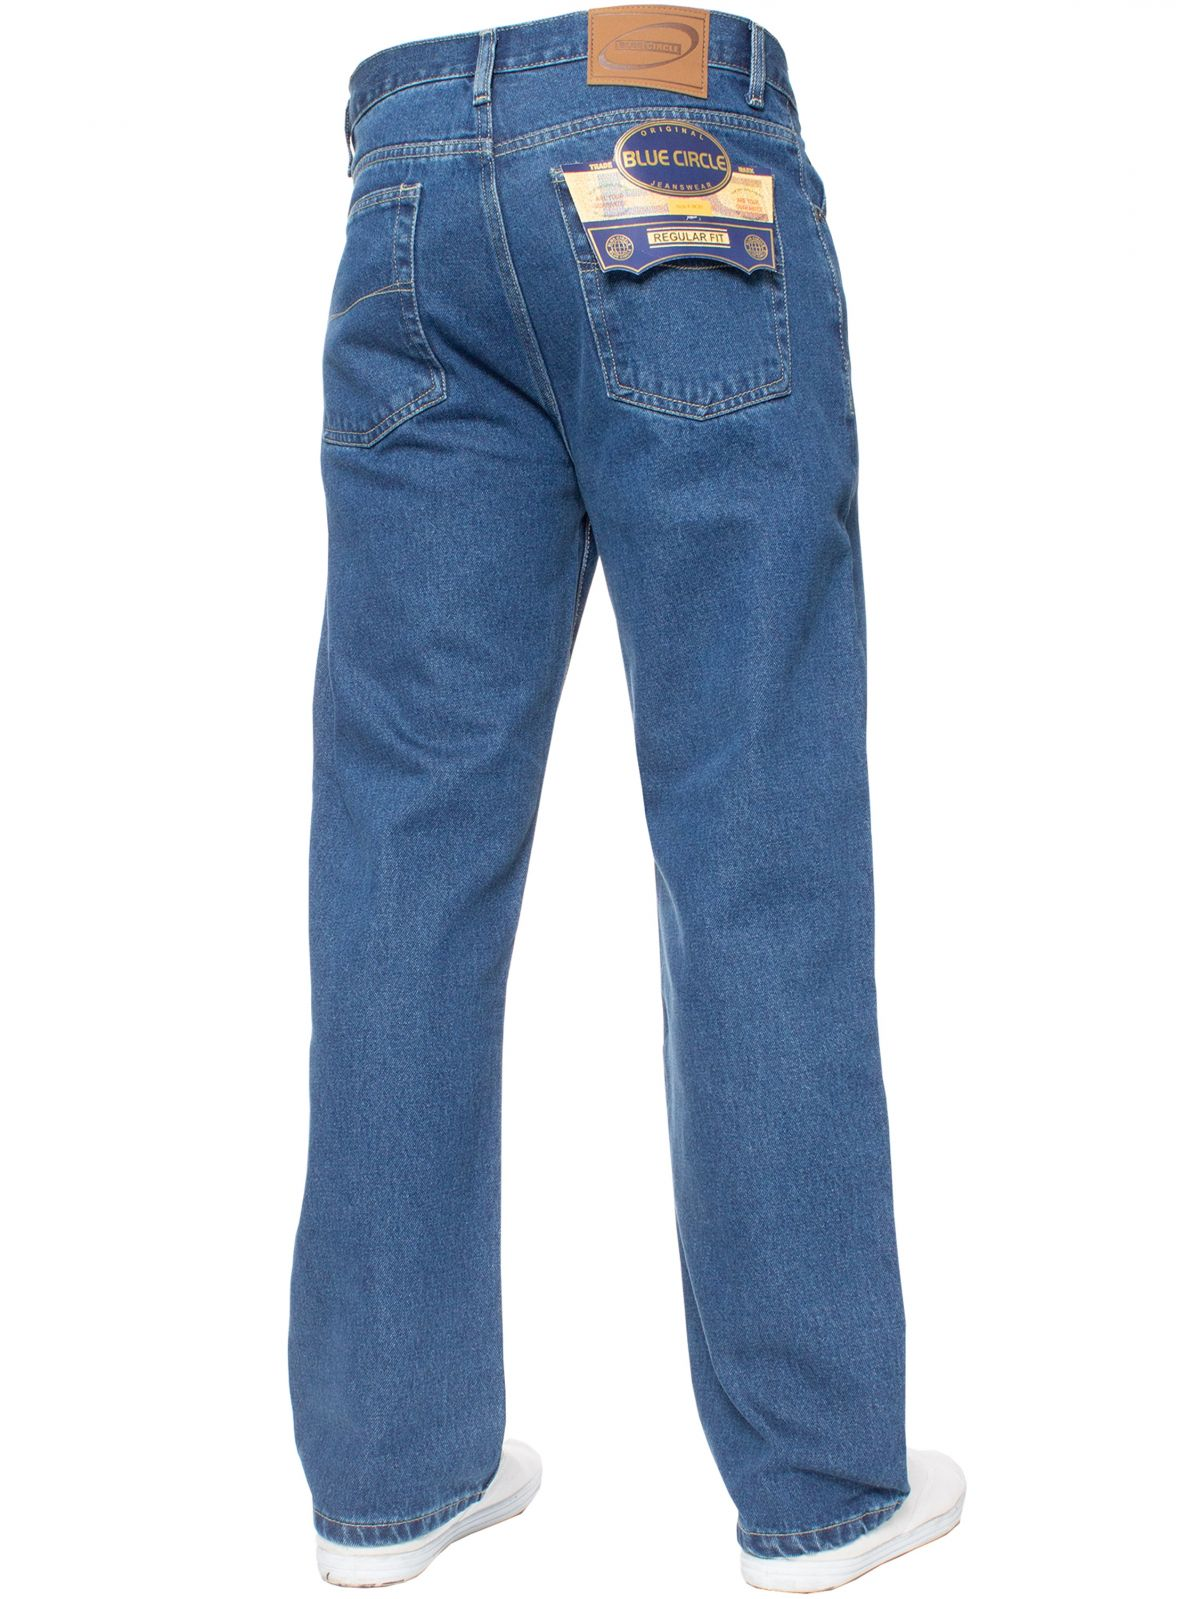 Mens Stone Wash Classic Denim Jeans BCB | Blue Circle Designer Menswear